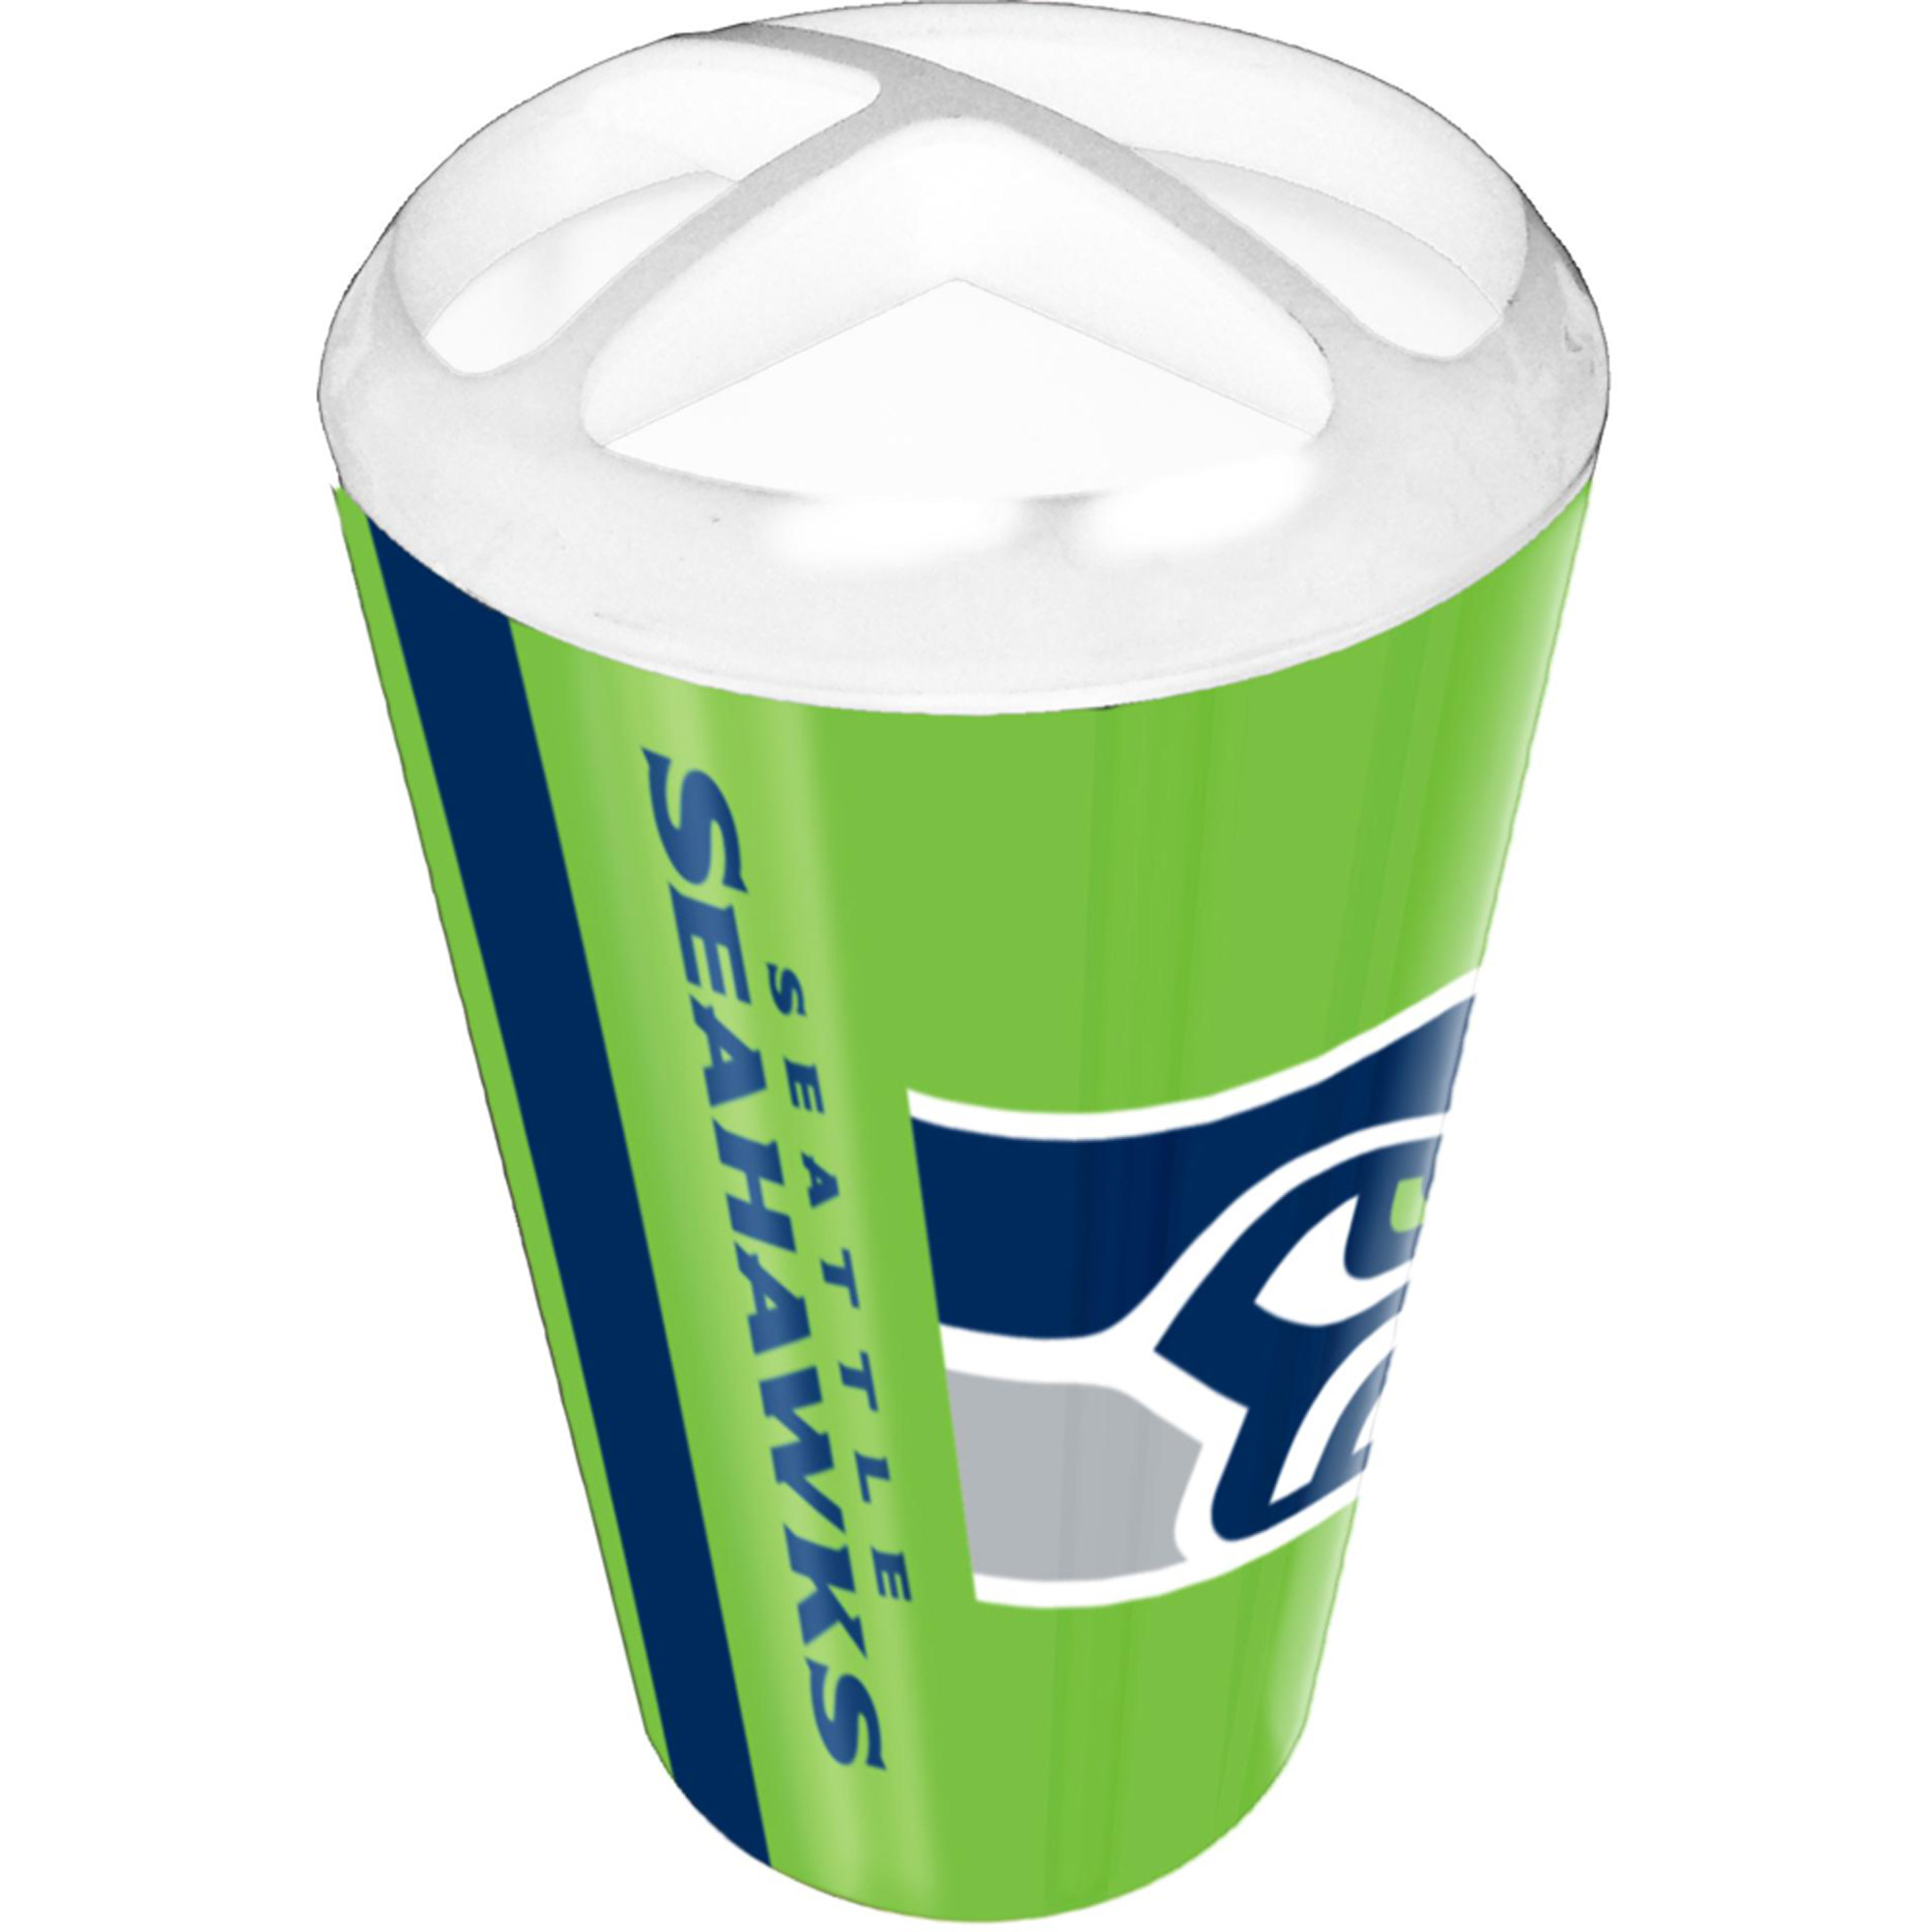 NFL Seattle Seahawks Decorative Bath Collection Toothbrush Holder